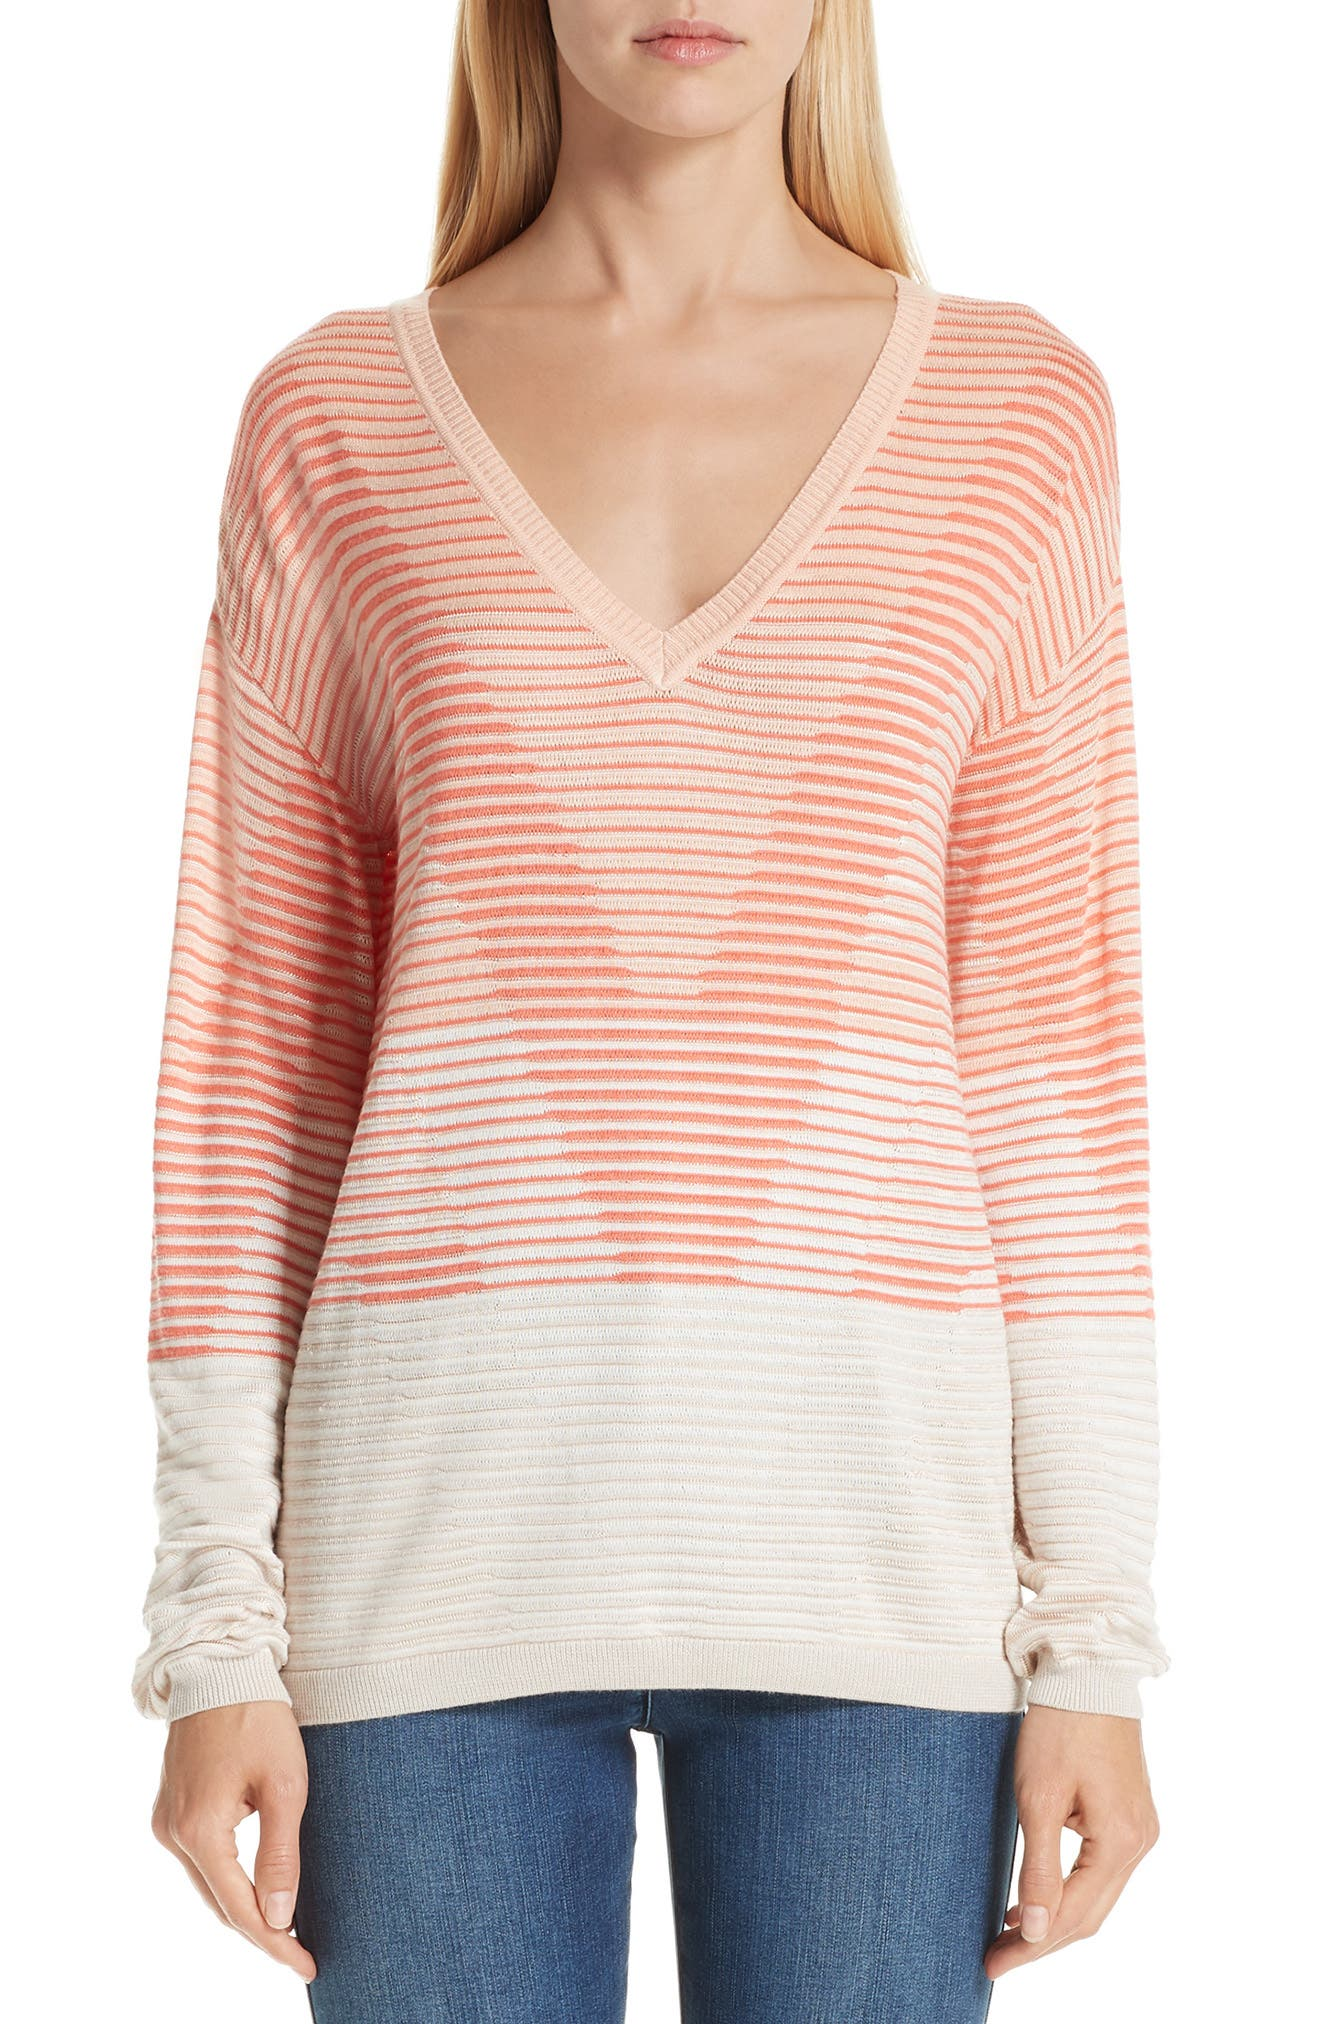 Degradé Matte Shine Drop Needle Knit V-Neck Sweater in Peach/ Cream